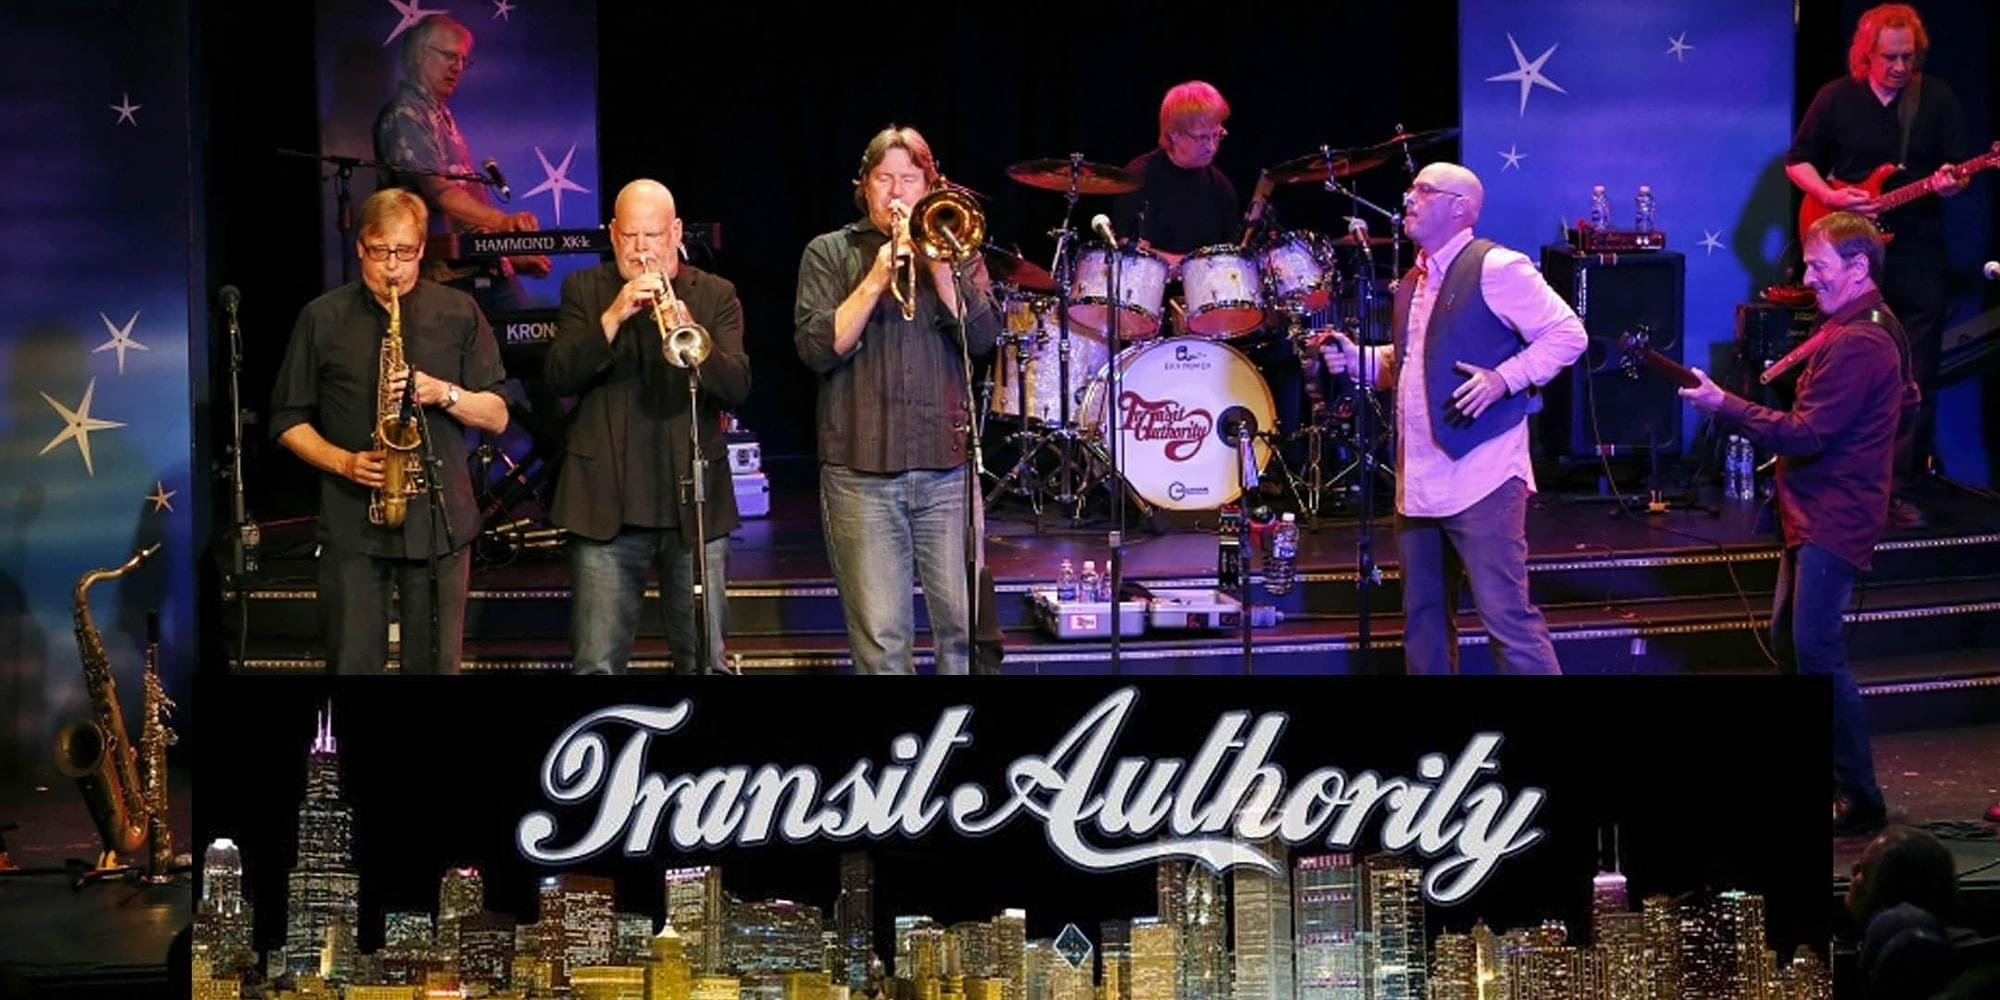 OCT 23 • Transit Authority Tribute to Chicago